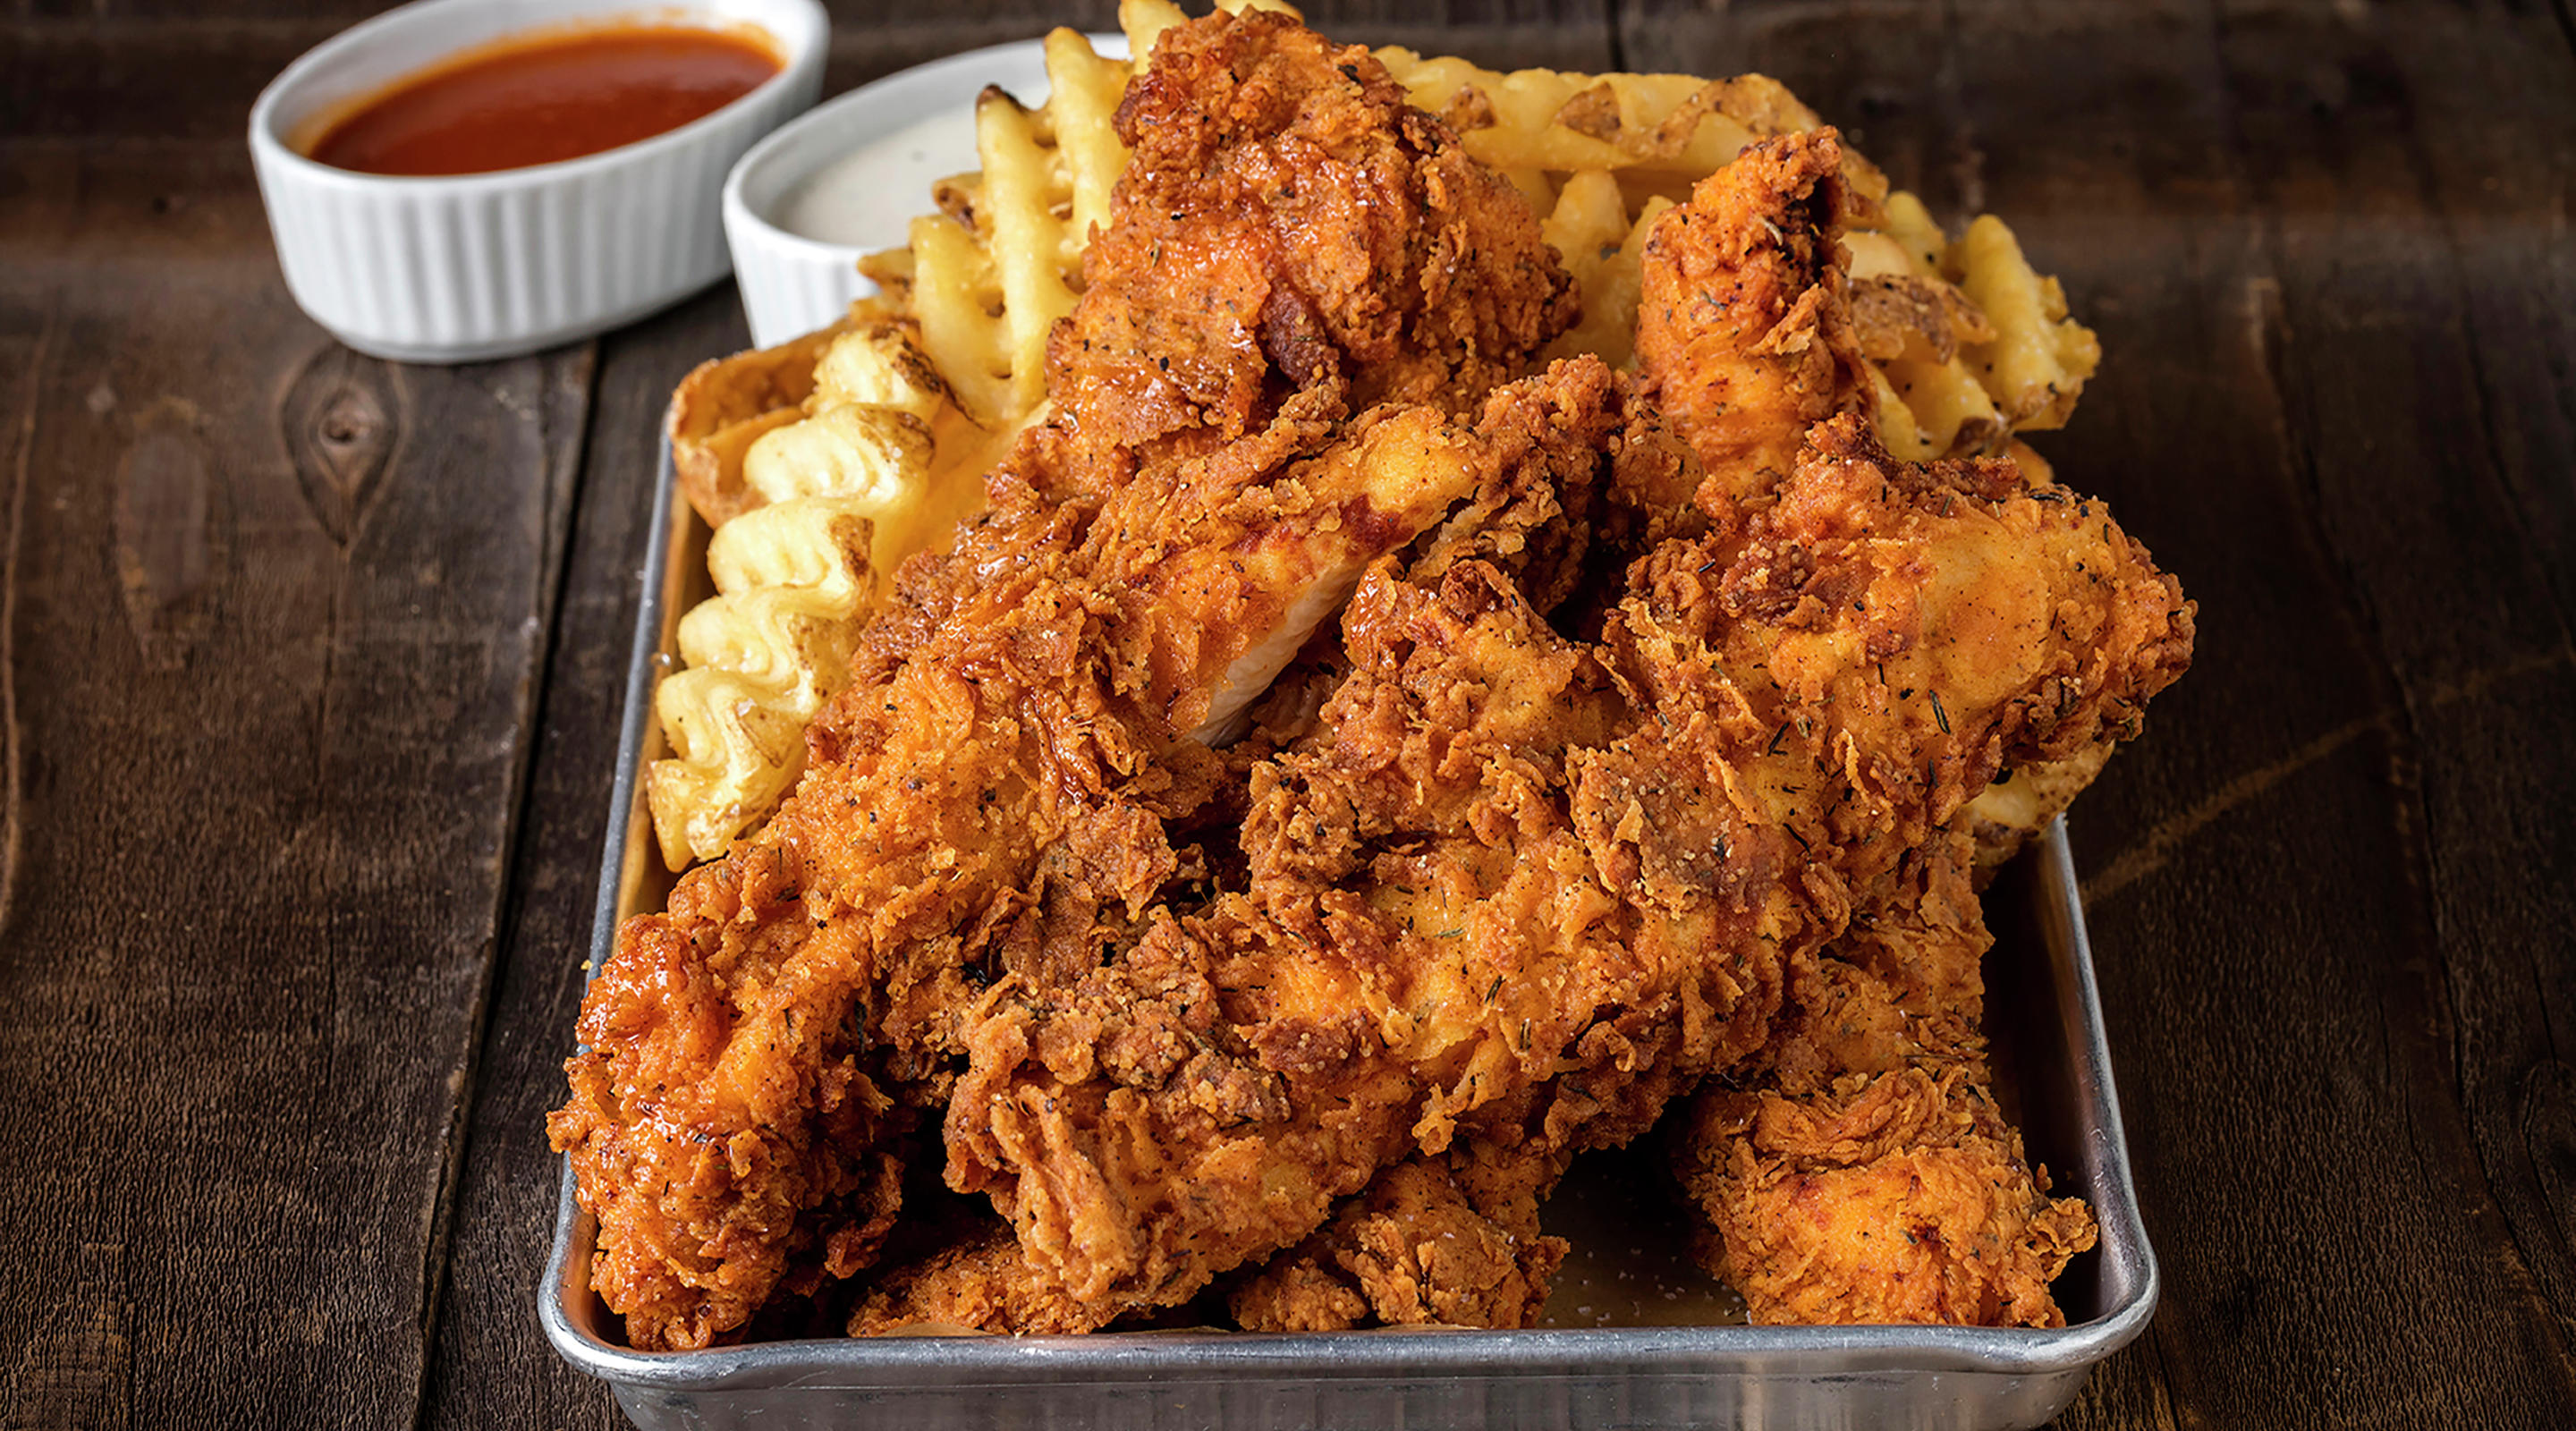 Bruxie Chicken Tenders image.